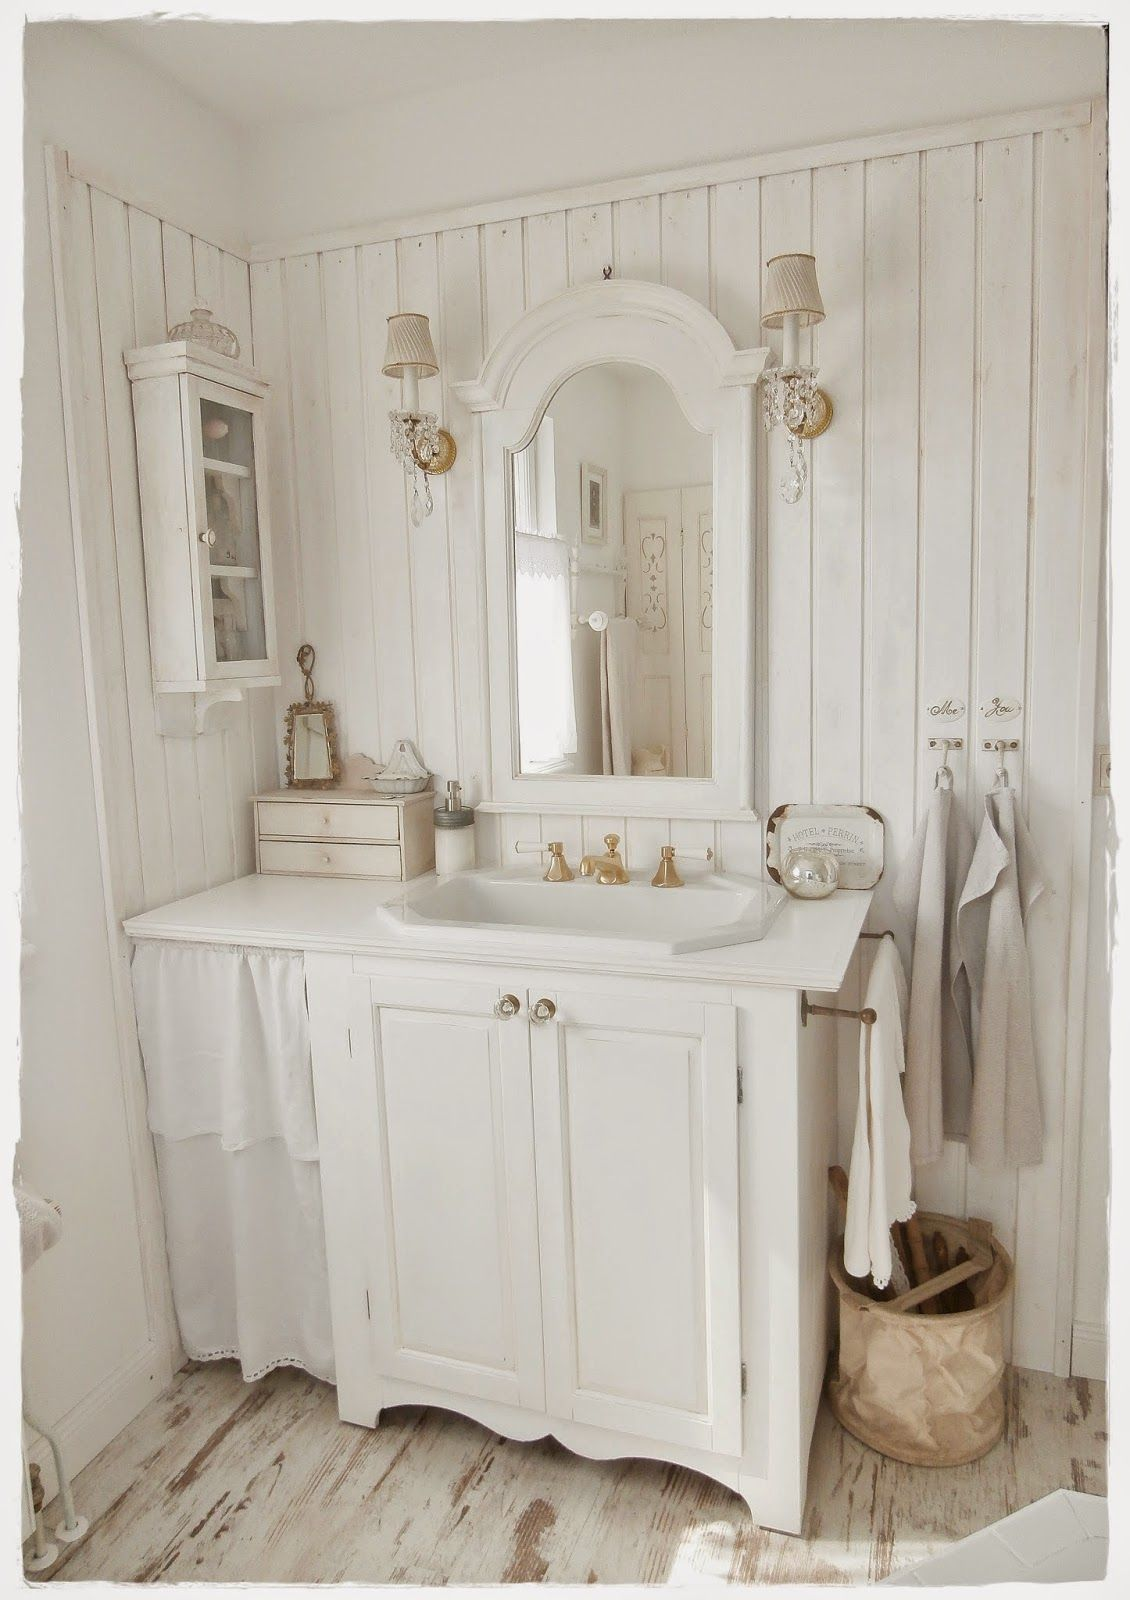 pin by mary alice vincent~fyfe on home decor that i love, Hause ideen